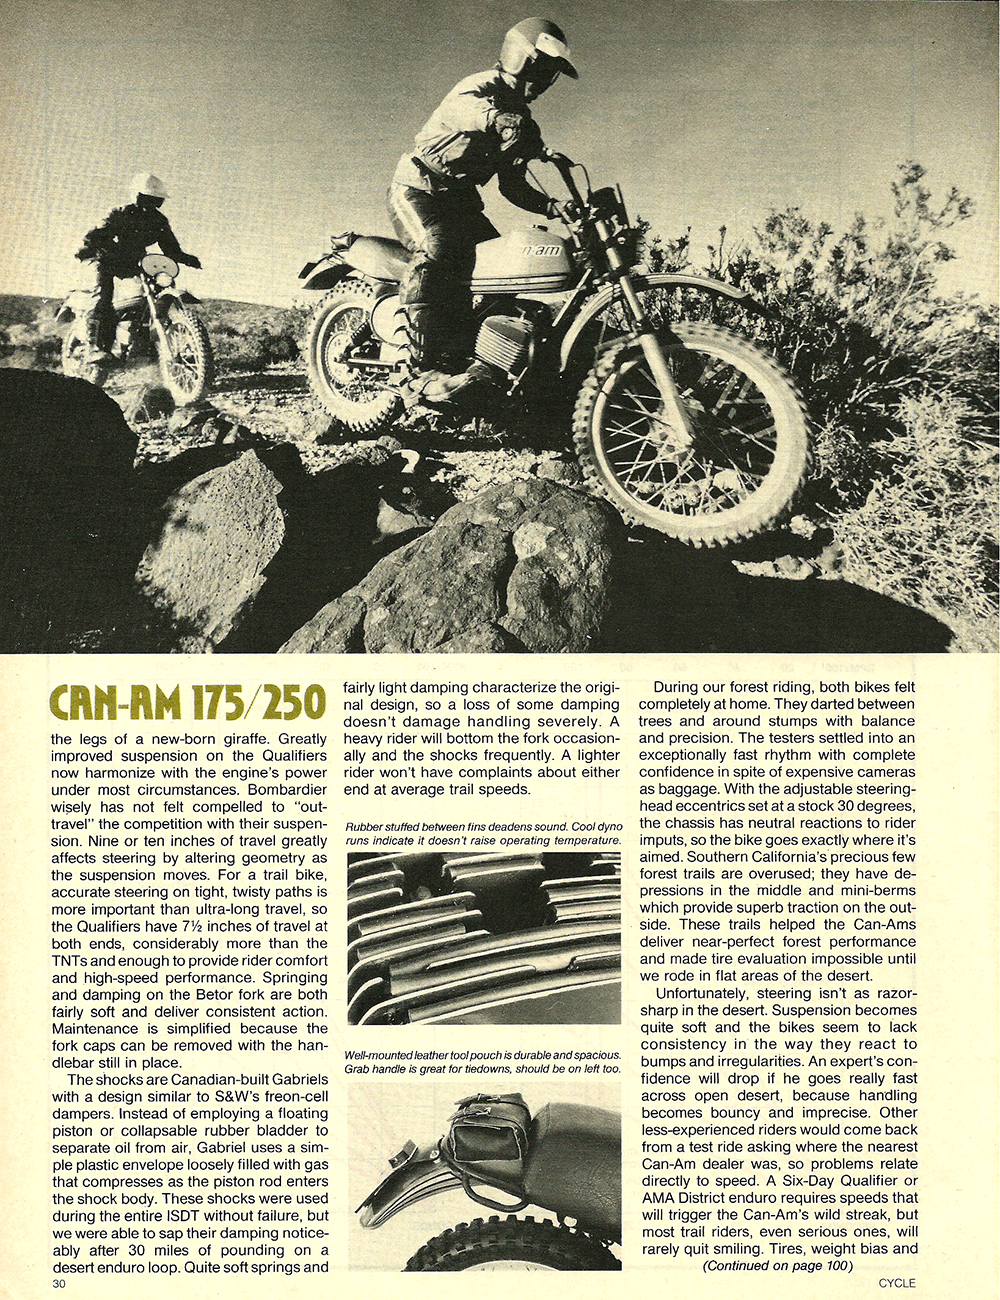 1977 Can-Am 175 and 250 Qualifier road test 7.jpg